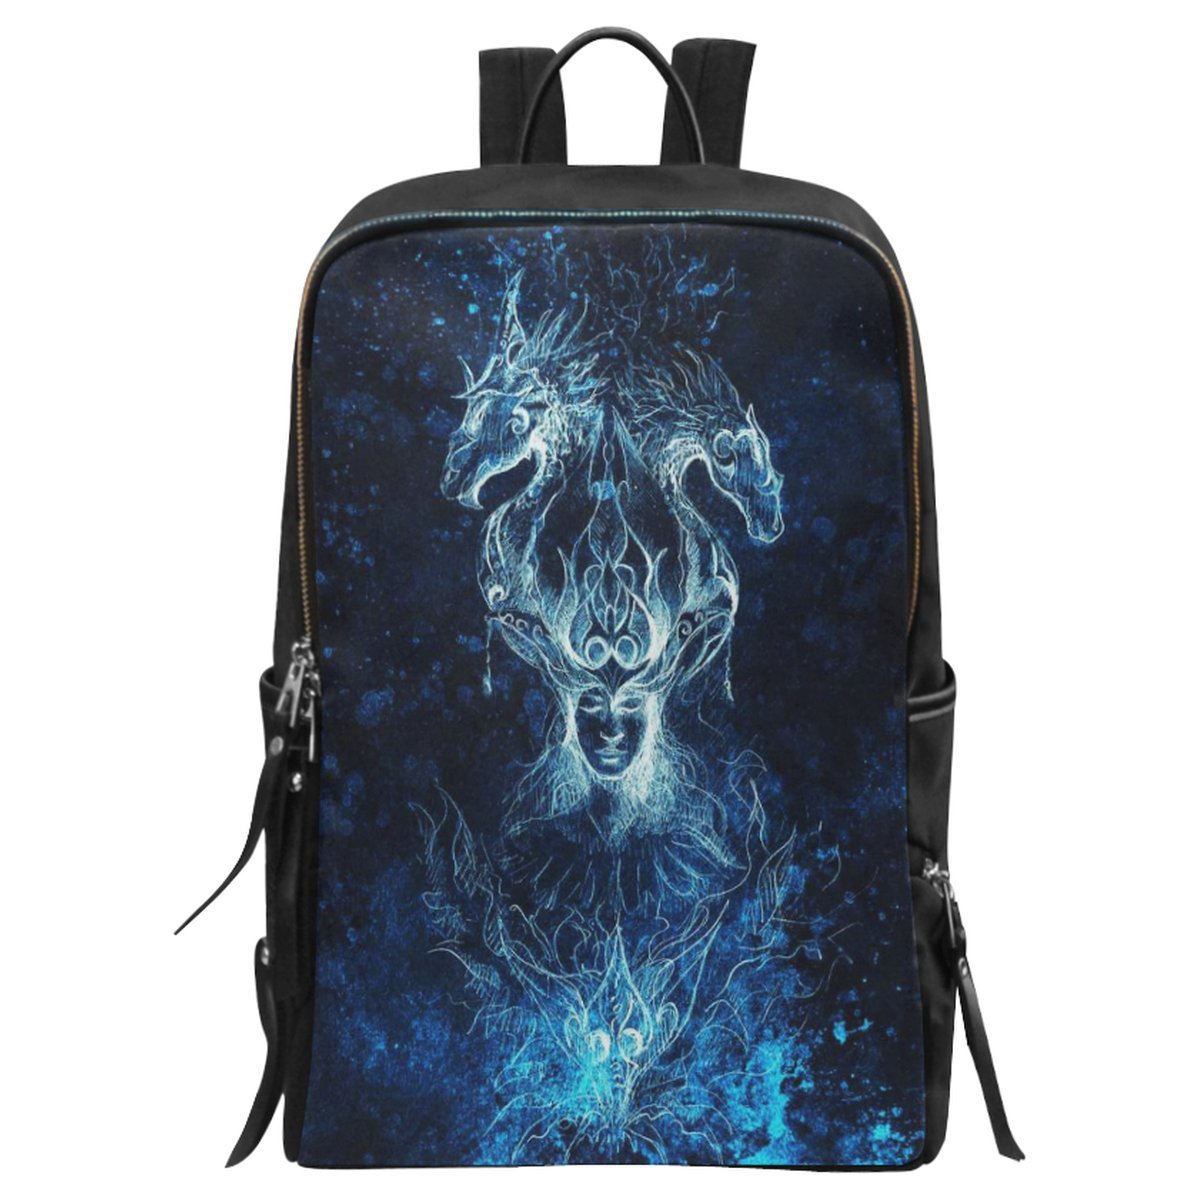 free shipping InterestPrint Animal Fantasy Man with Dragon School Casual  Travel Backpack School Bag Travel Daypack 5ec9194d5b93b